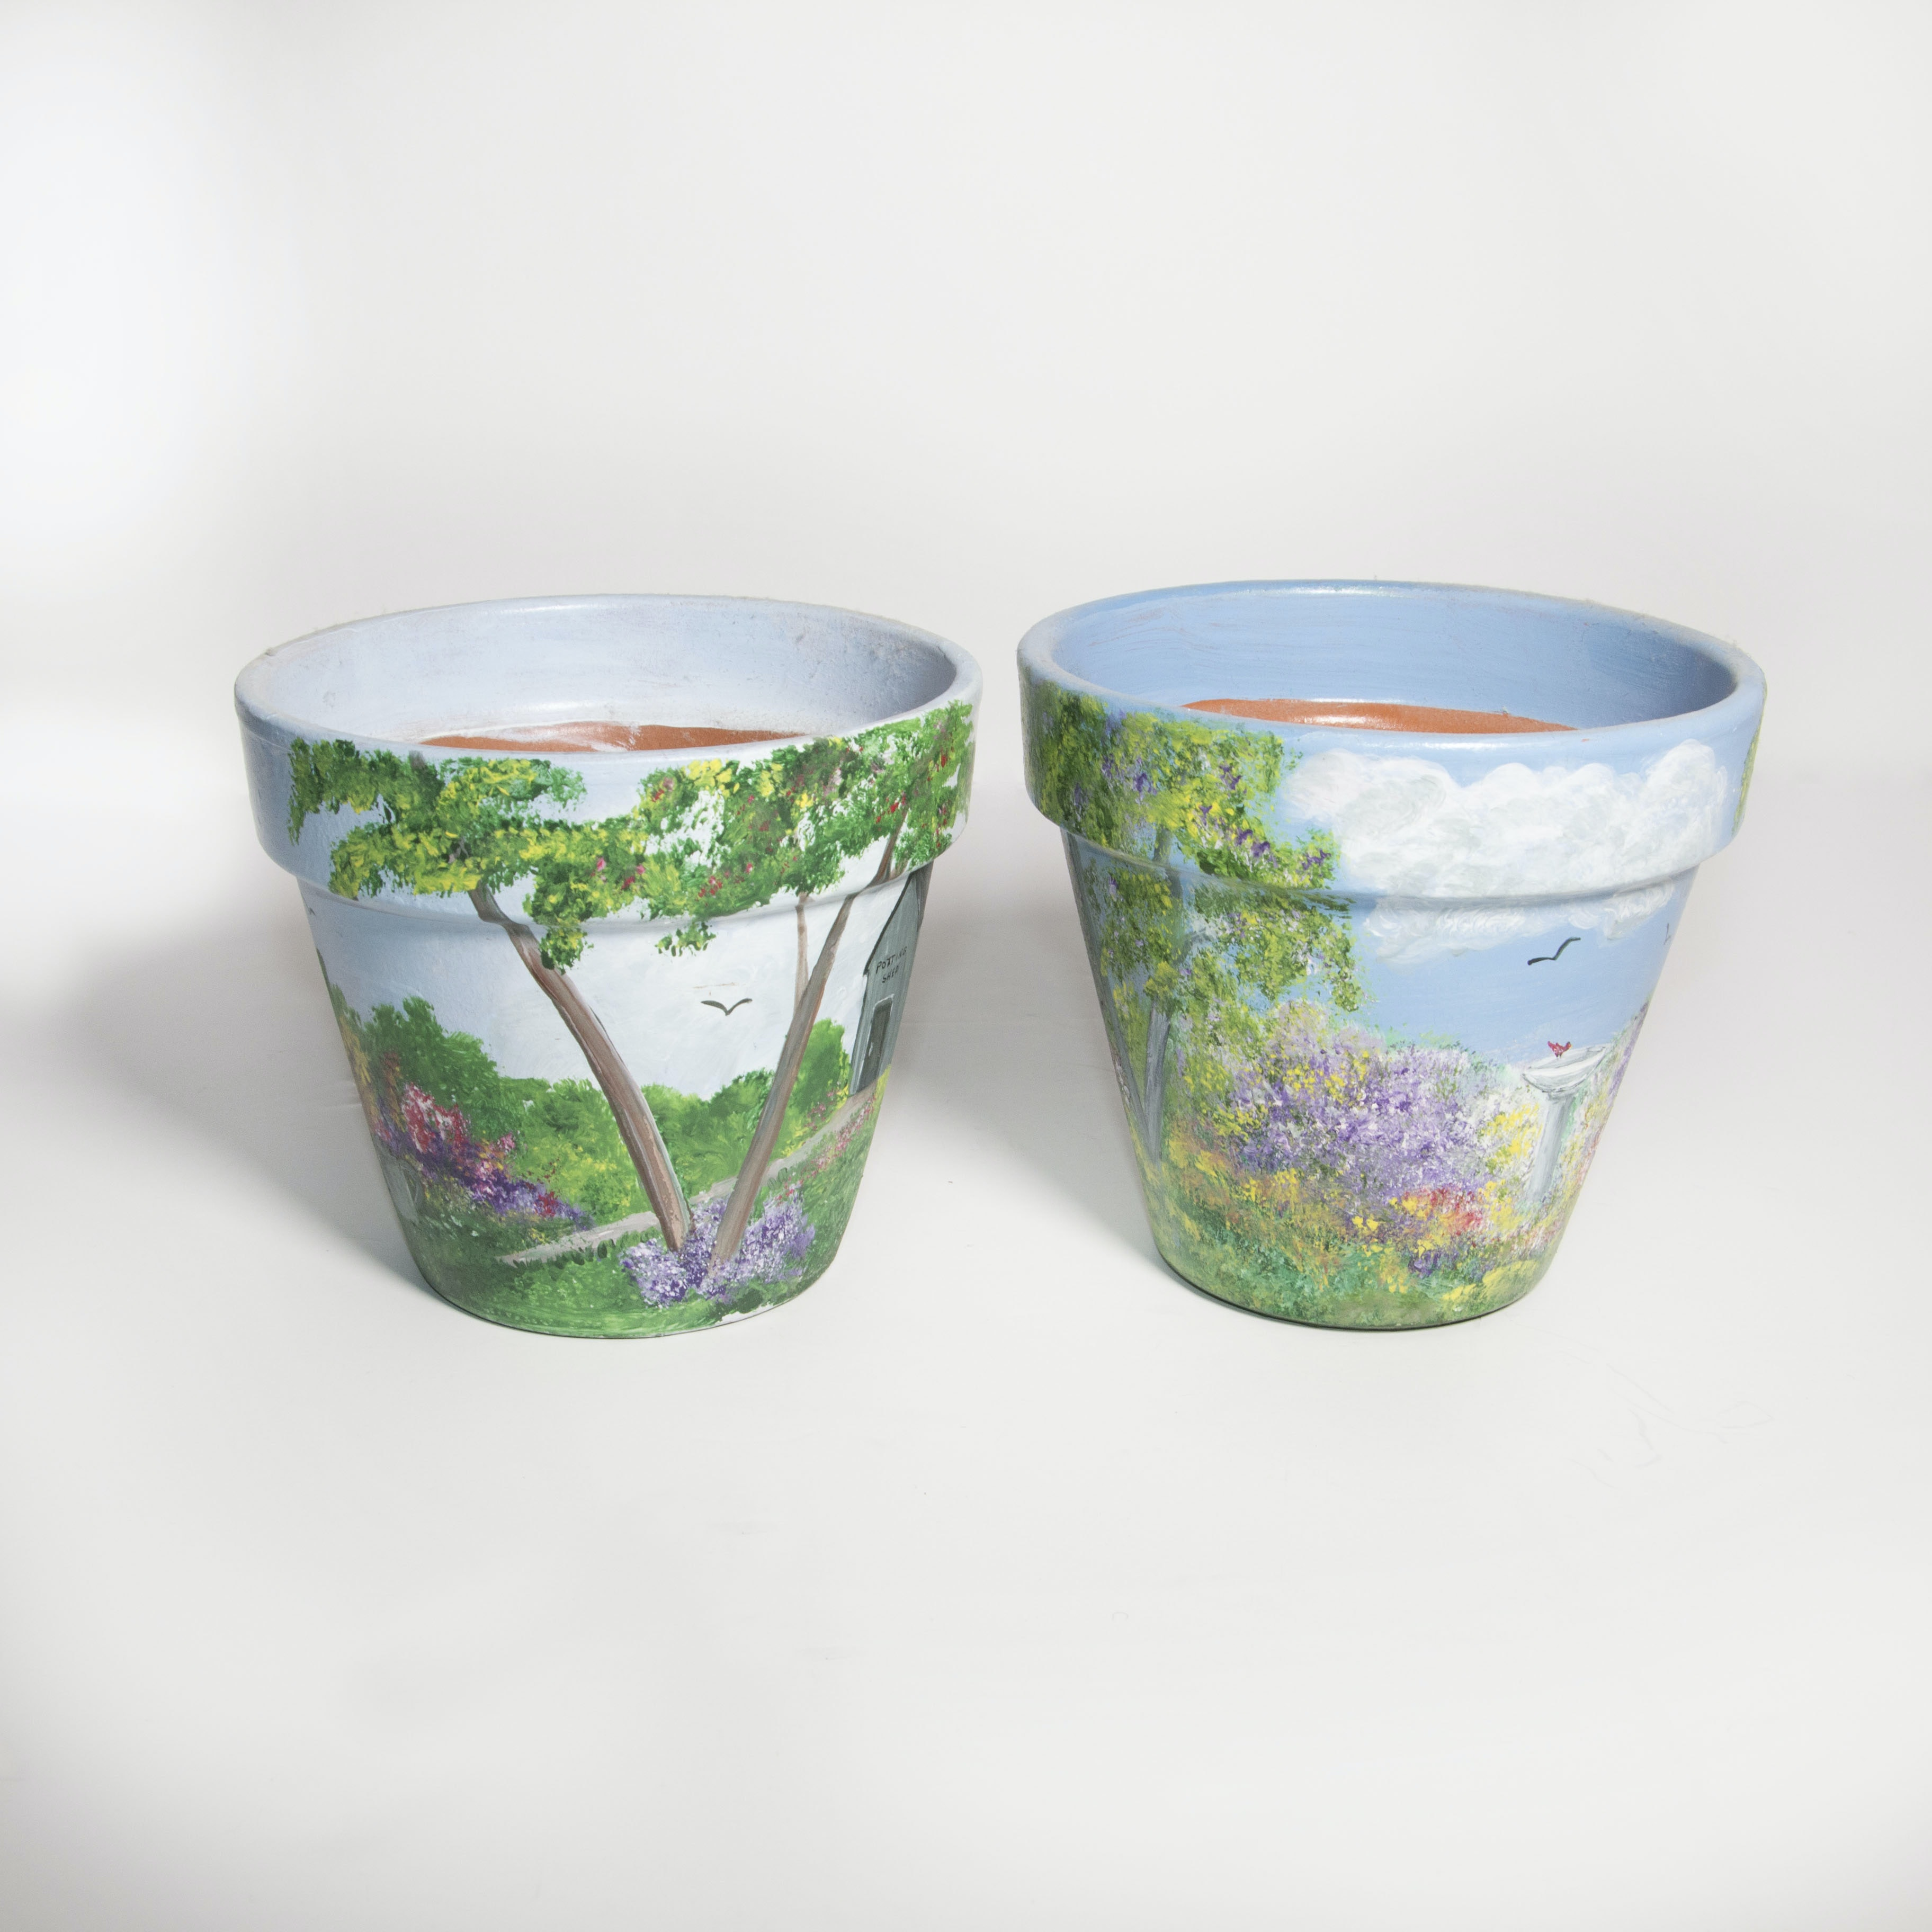 Mary Jo Hause Hand-Painted Terracotta Flower Pots